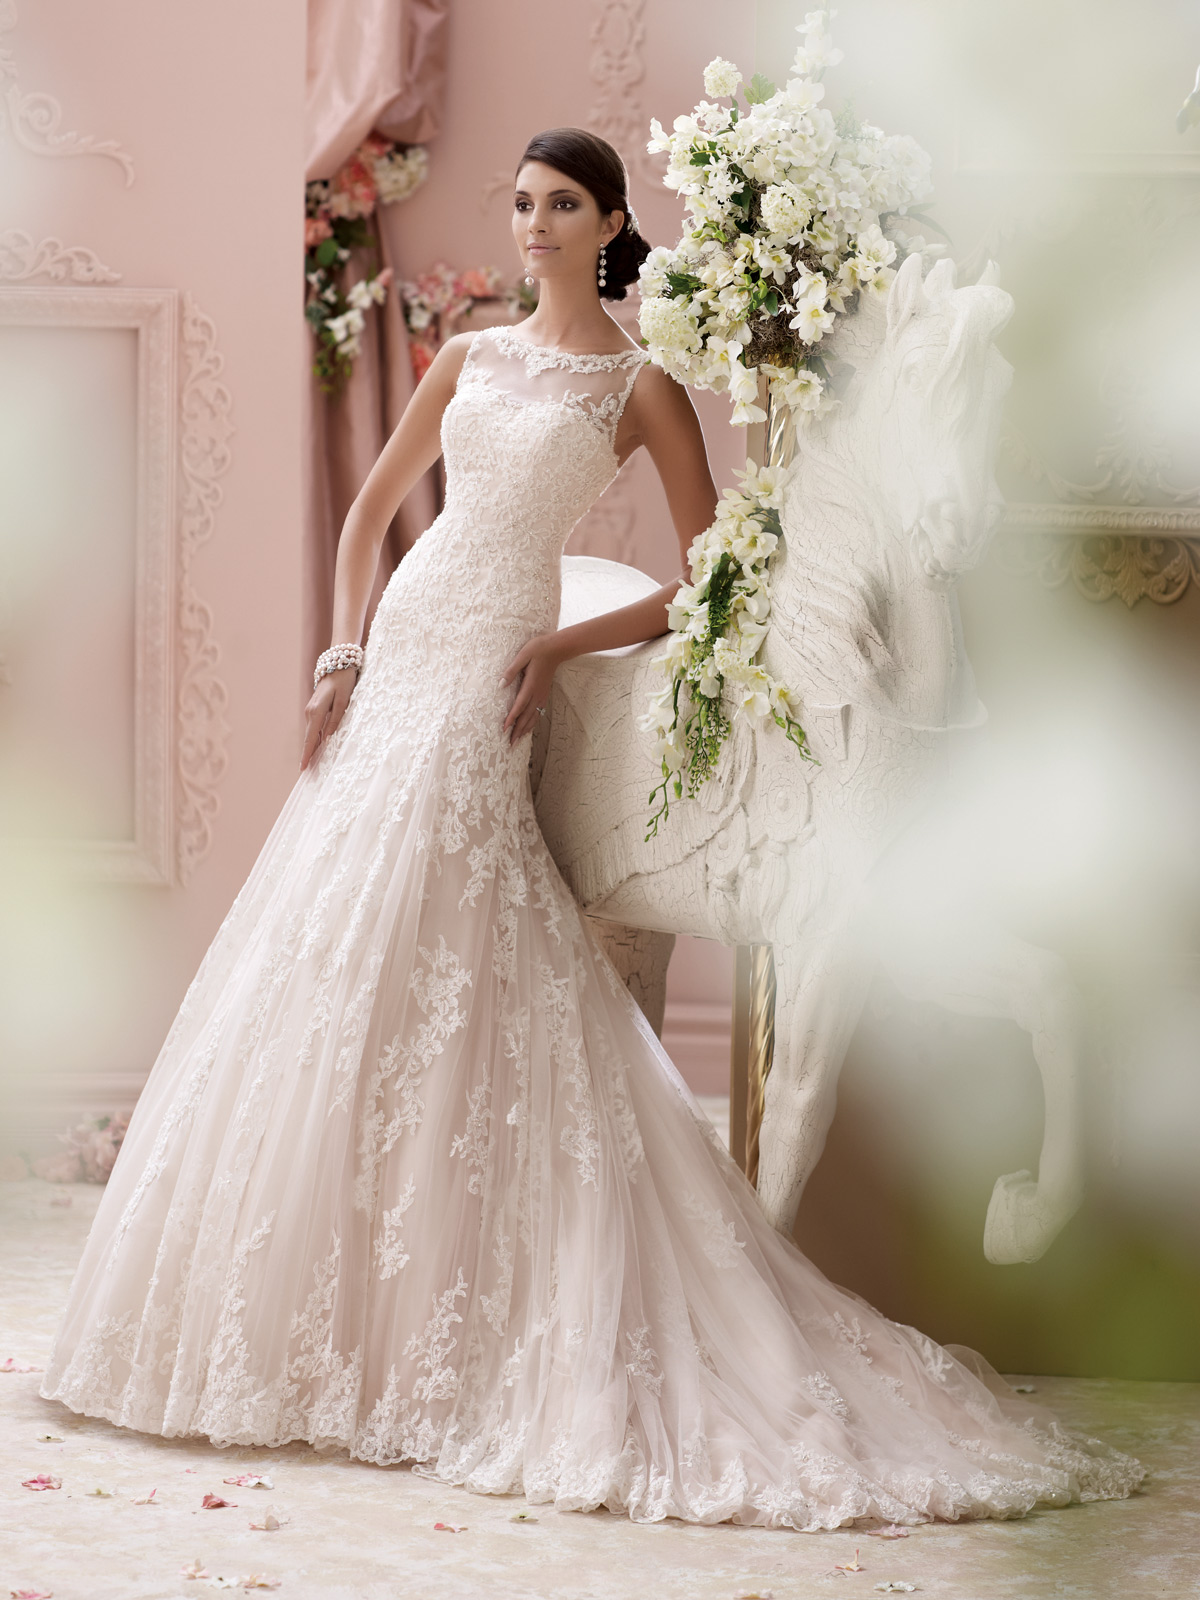 Home fiona todhunter bridals dublin featured gowns hand picked by our team ombrellifo Choice Image